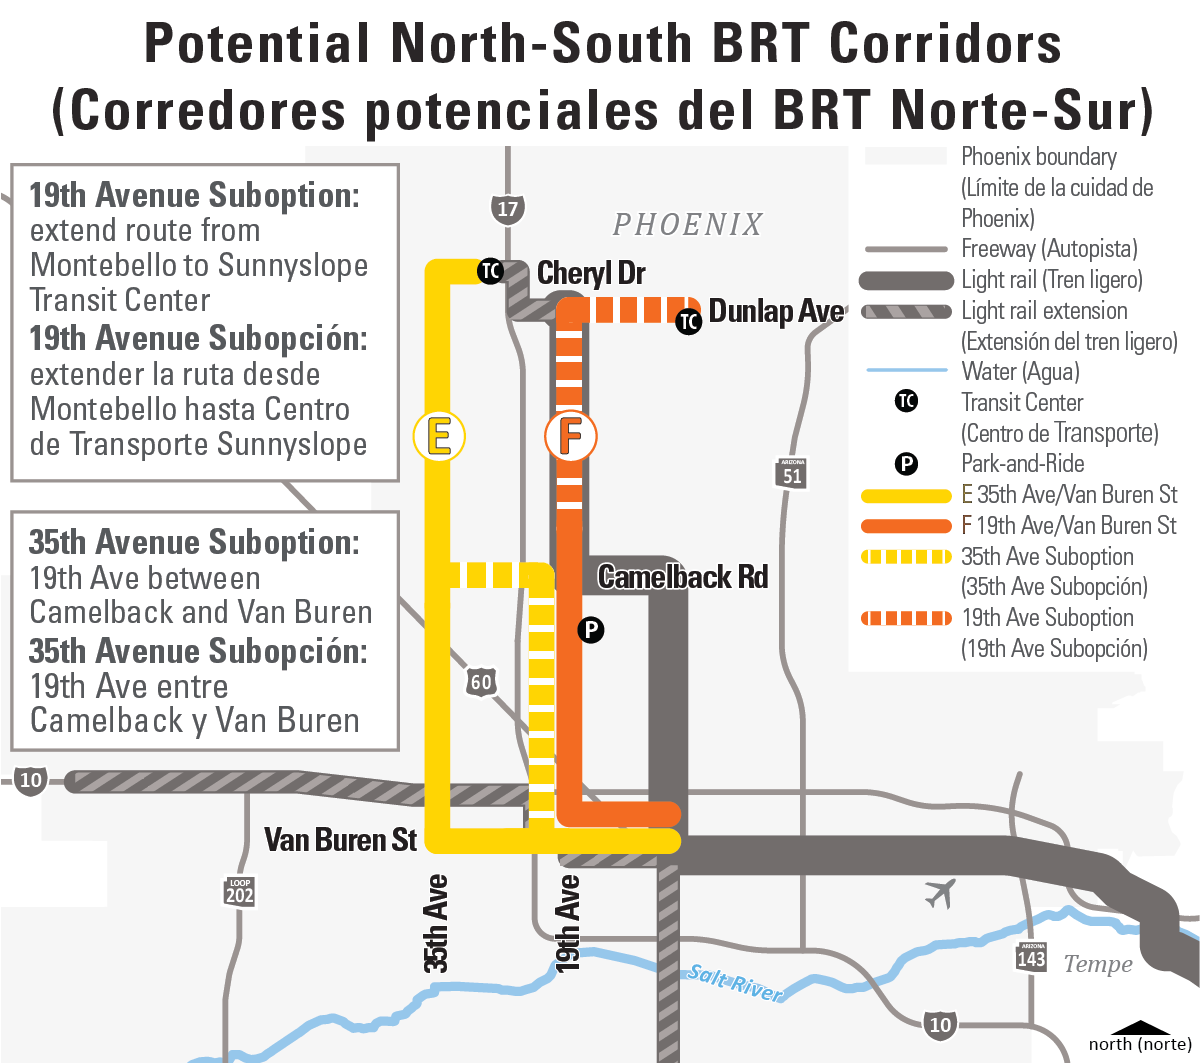 Potential North-South BRT Corridors (Corredores potenciales del BRT Norte-Sur) Map: 35th Ave/Van Buren St (E)- 35th Avenue Suboption: 19th Ave between Camelback and Van Buren (ES) 35th Avenue Subopción: 19th Ave entre Camelback y Van Buren;  19th Ave/Van Buren St (F)- 19th Avenue Suboption: extend route from Montebello to Sunnyslope Transit Center (ES) 19th Avenue Subopción: extender la ruta desde Montebello hasta Centro de Transporte Sunnyslope